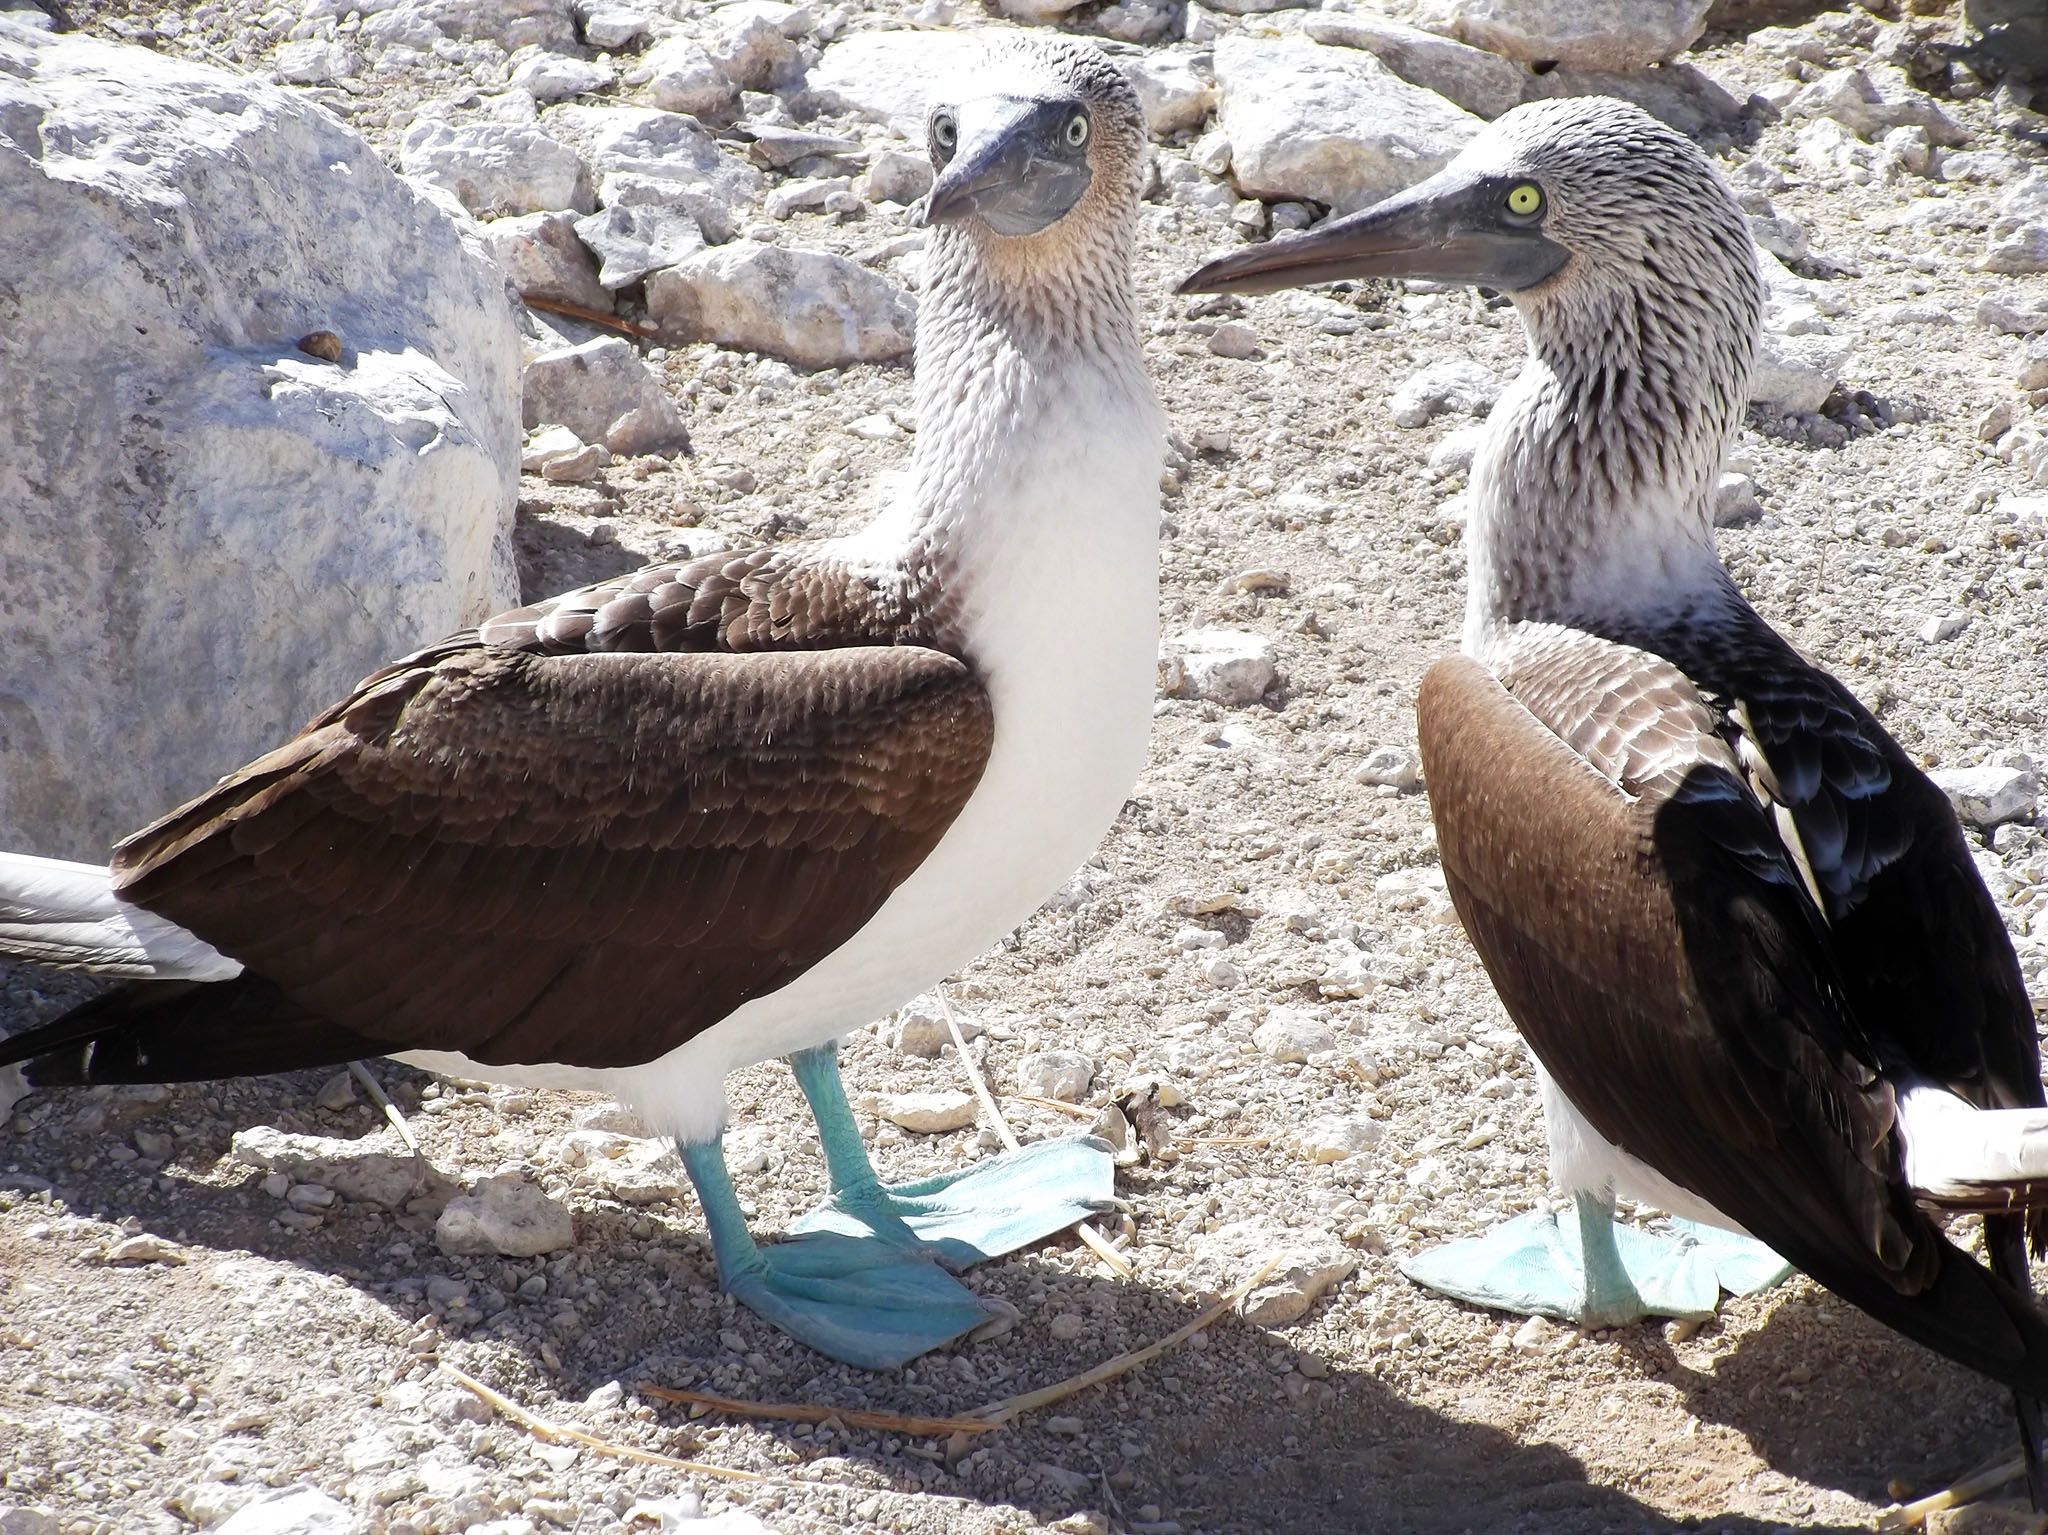 Mexico: Blue-footed boobies. This image is from The Desert Sea. [Photo of the day - July 2017]